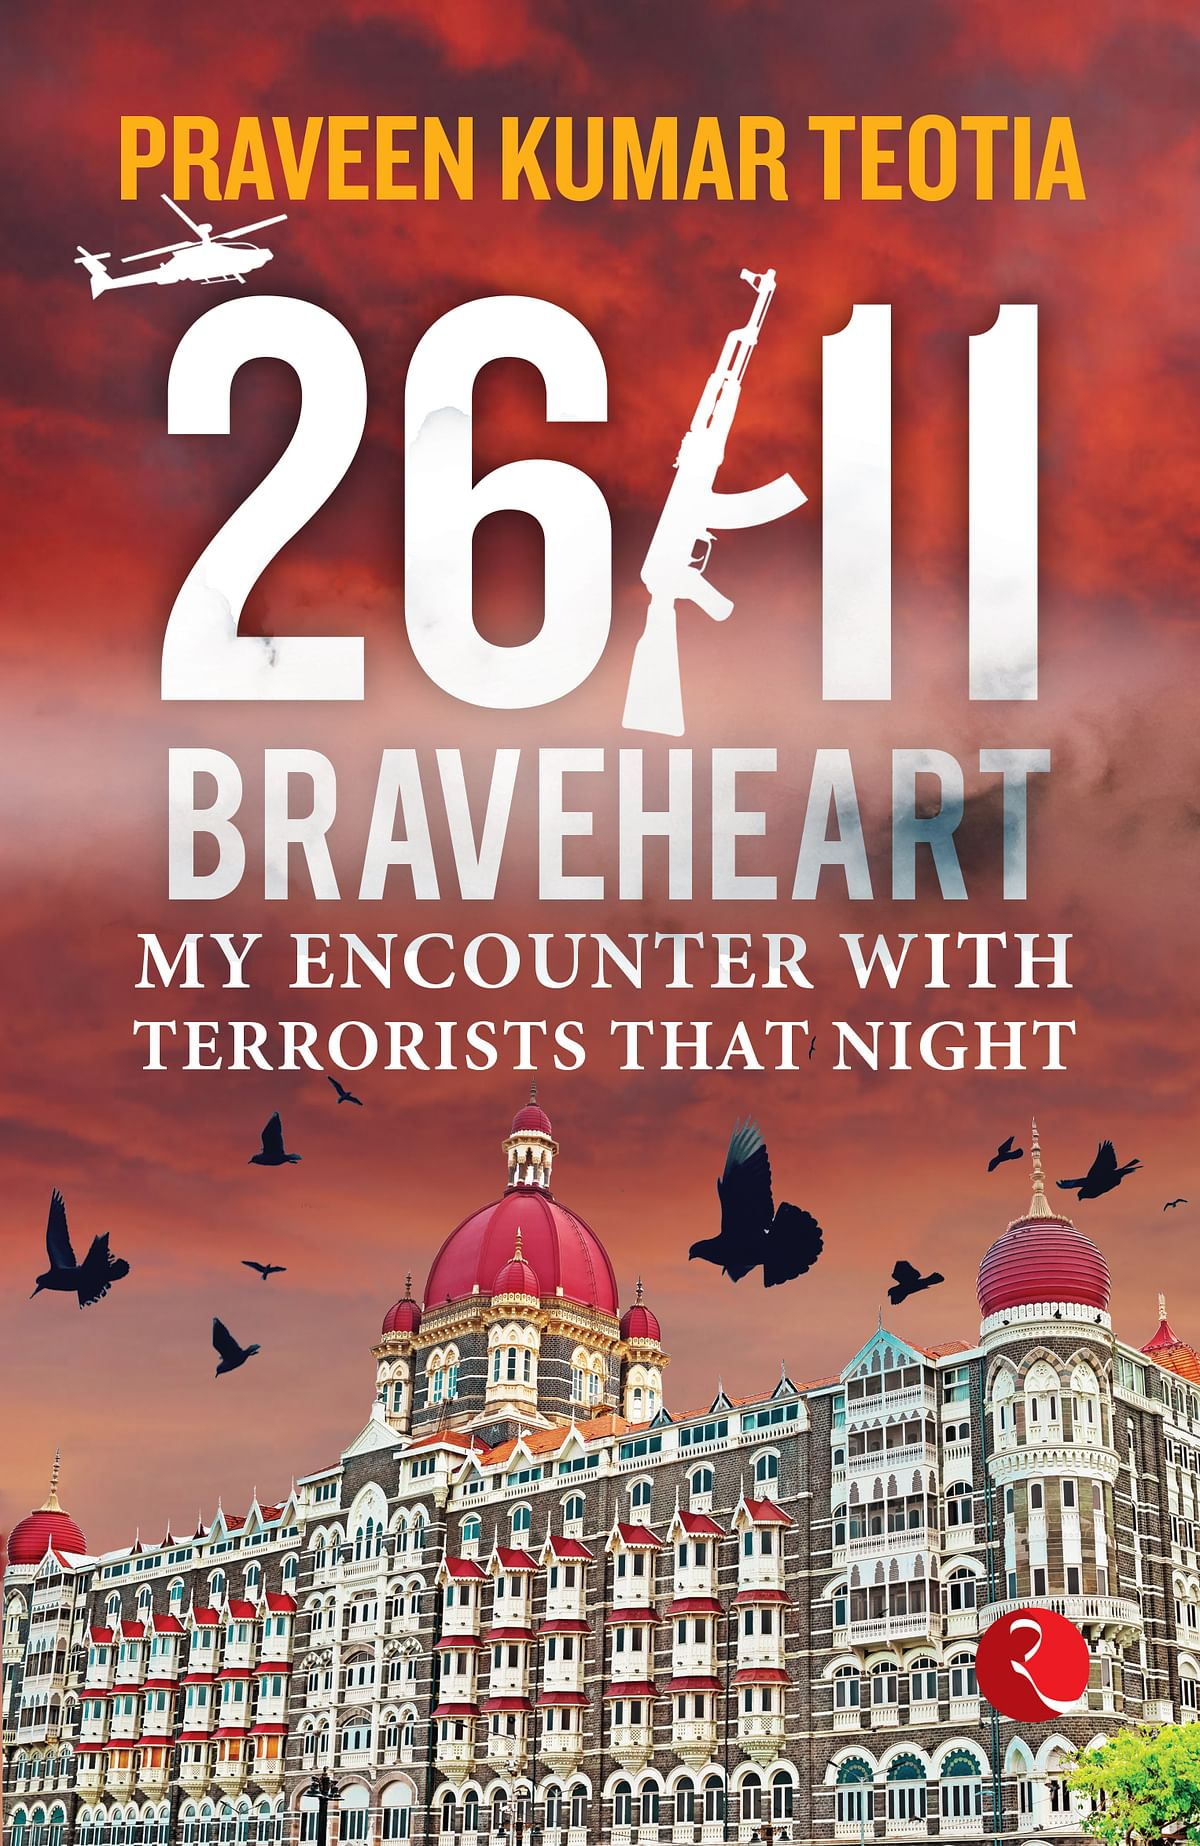 Ex-marine commando Praveen Kumar Teotia recalls night of 26/11 Mumbai terror attacks